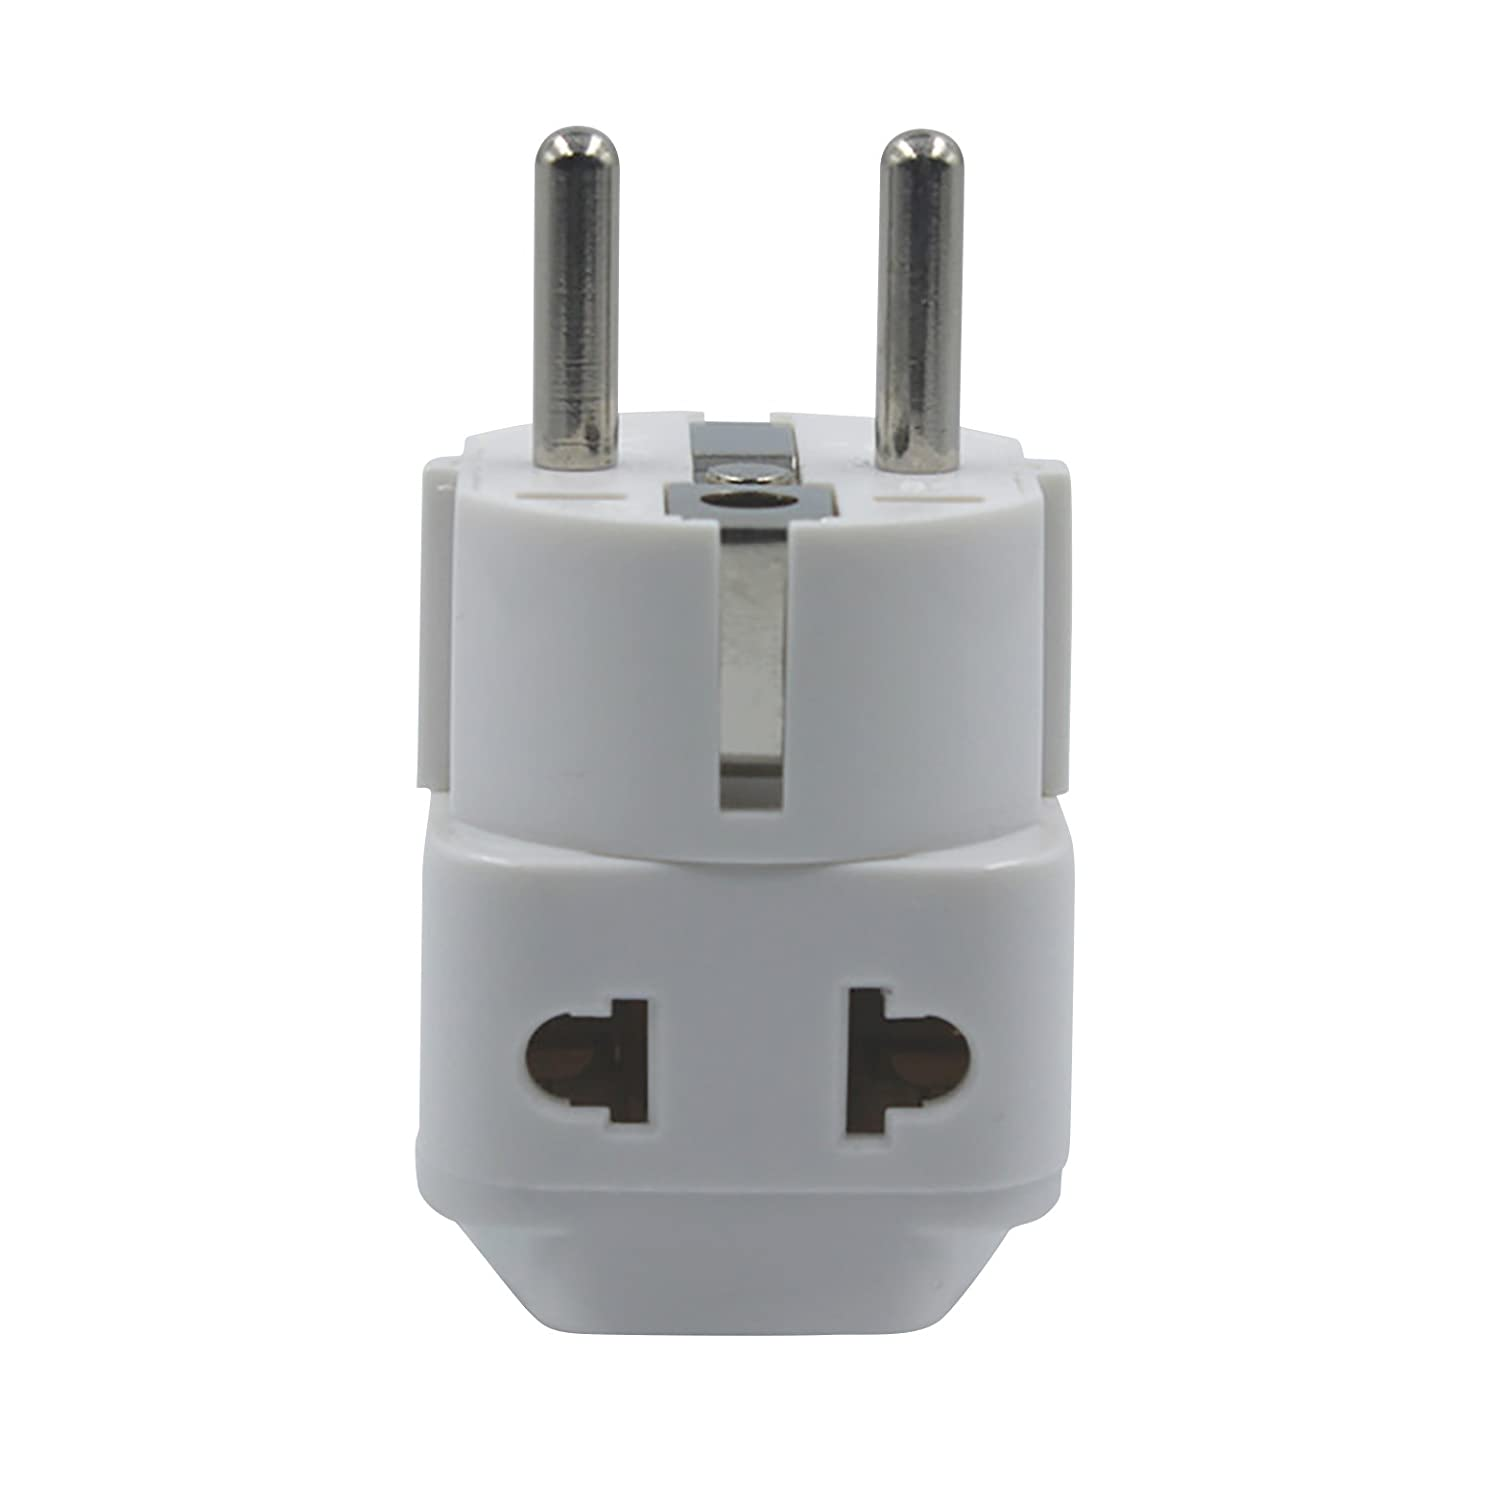 10 x Female 2.1x5.5mm DC Power Cable Jack Adapter Connector Plug Led Strip CCTV Camera Use 12V CECOMINOD021502 Ksmile/® 10 x Male